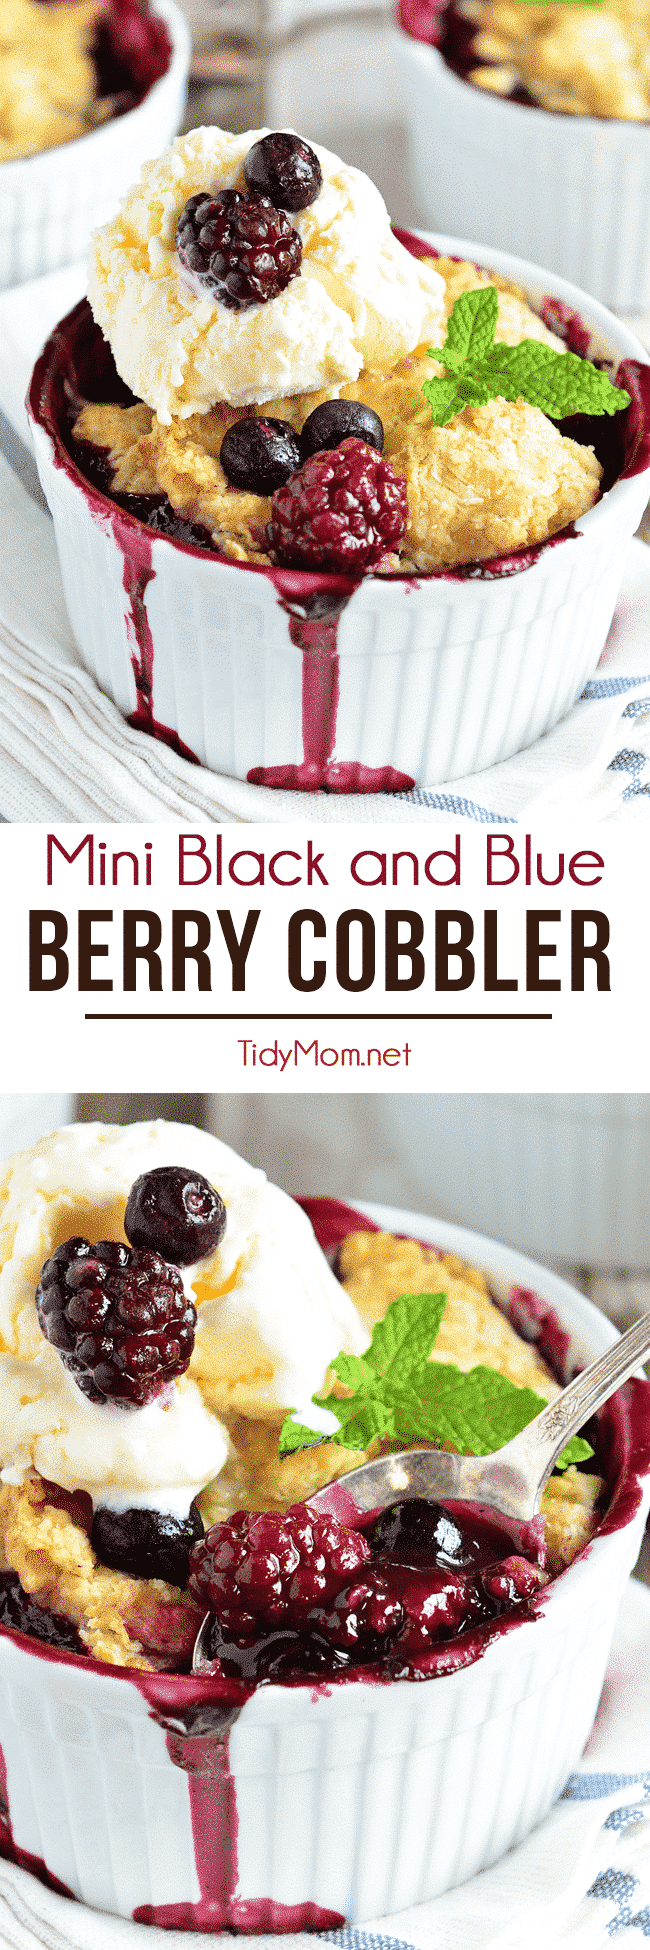 Berry Cobbler is a dessert classic everyone loves! Blackberries and blueberries are topped with a delicious biscuit like dough and baked in ramekins for the perfect single-serving dessert. Serve fresh out of the oven with scoop of ice cream and they are irresistible! Mini Black and Blue Berry Cobbler recipe at TidyMom.net #cobbler #dessert #dessertrecipes #blackberry #blueberry #pie